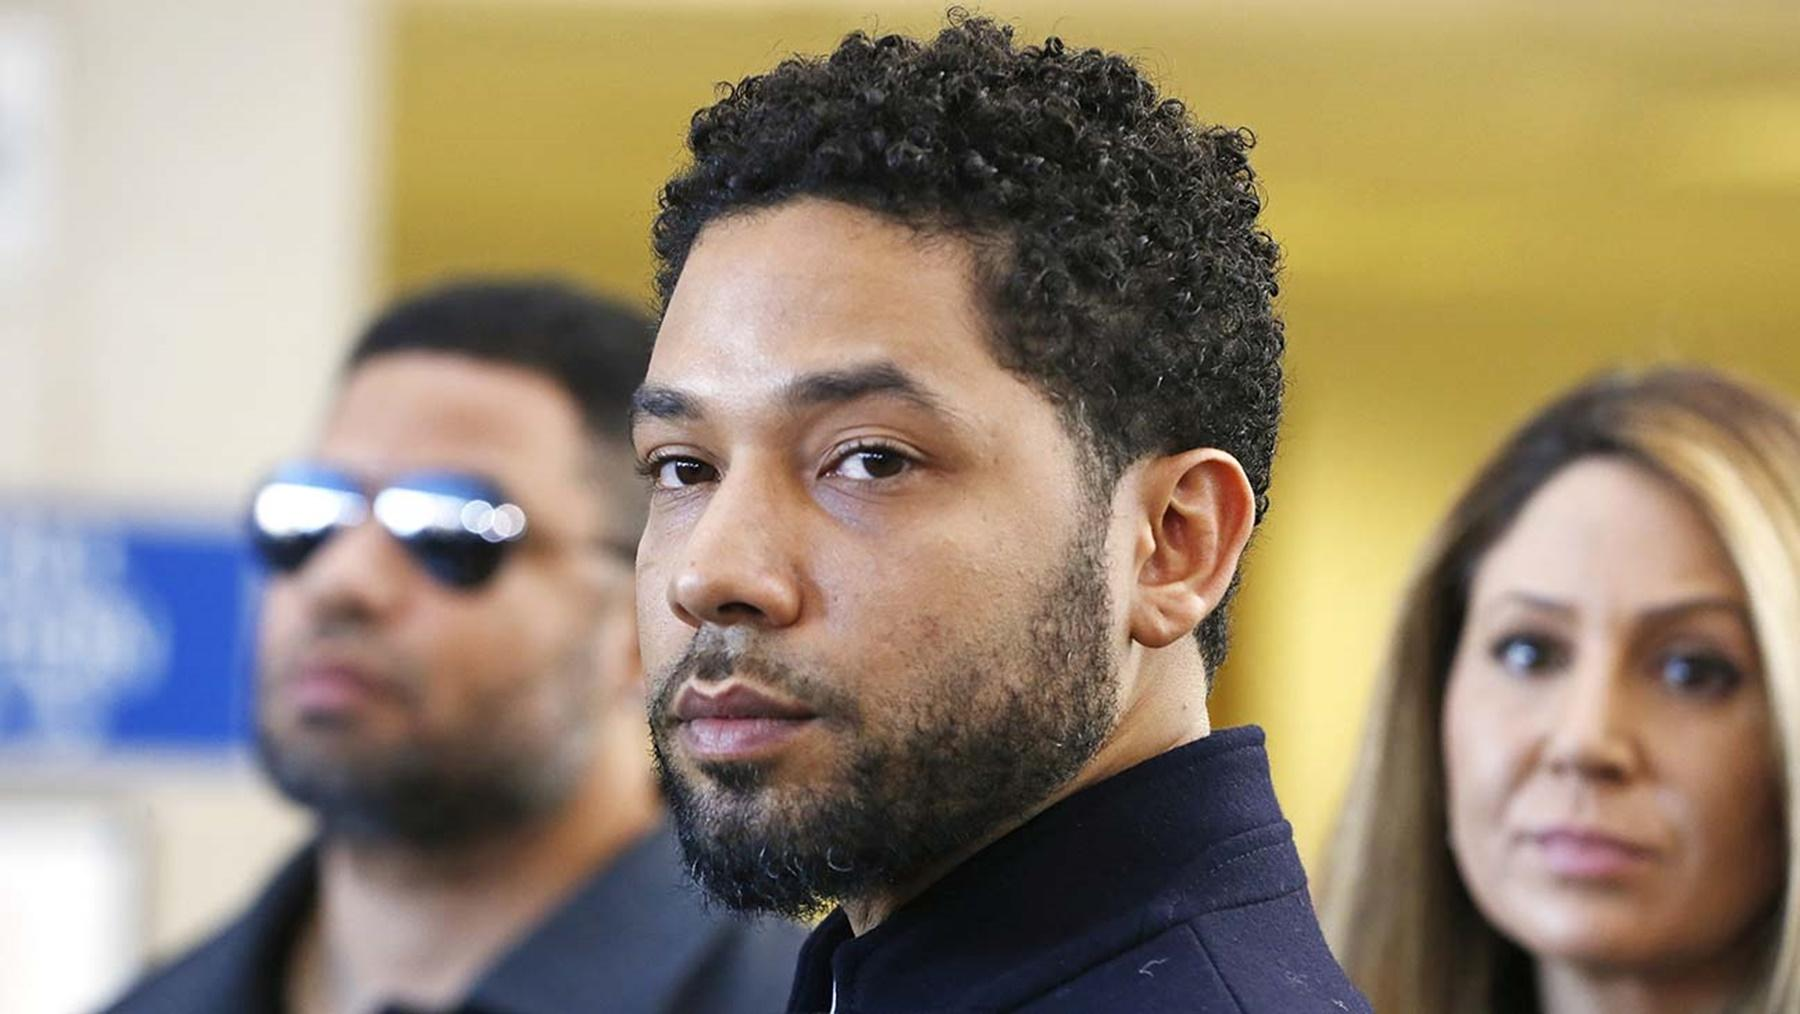 Jussie Smollett Saga Continues With New Media Dump By The Police Involving A Video